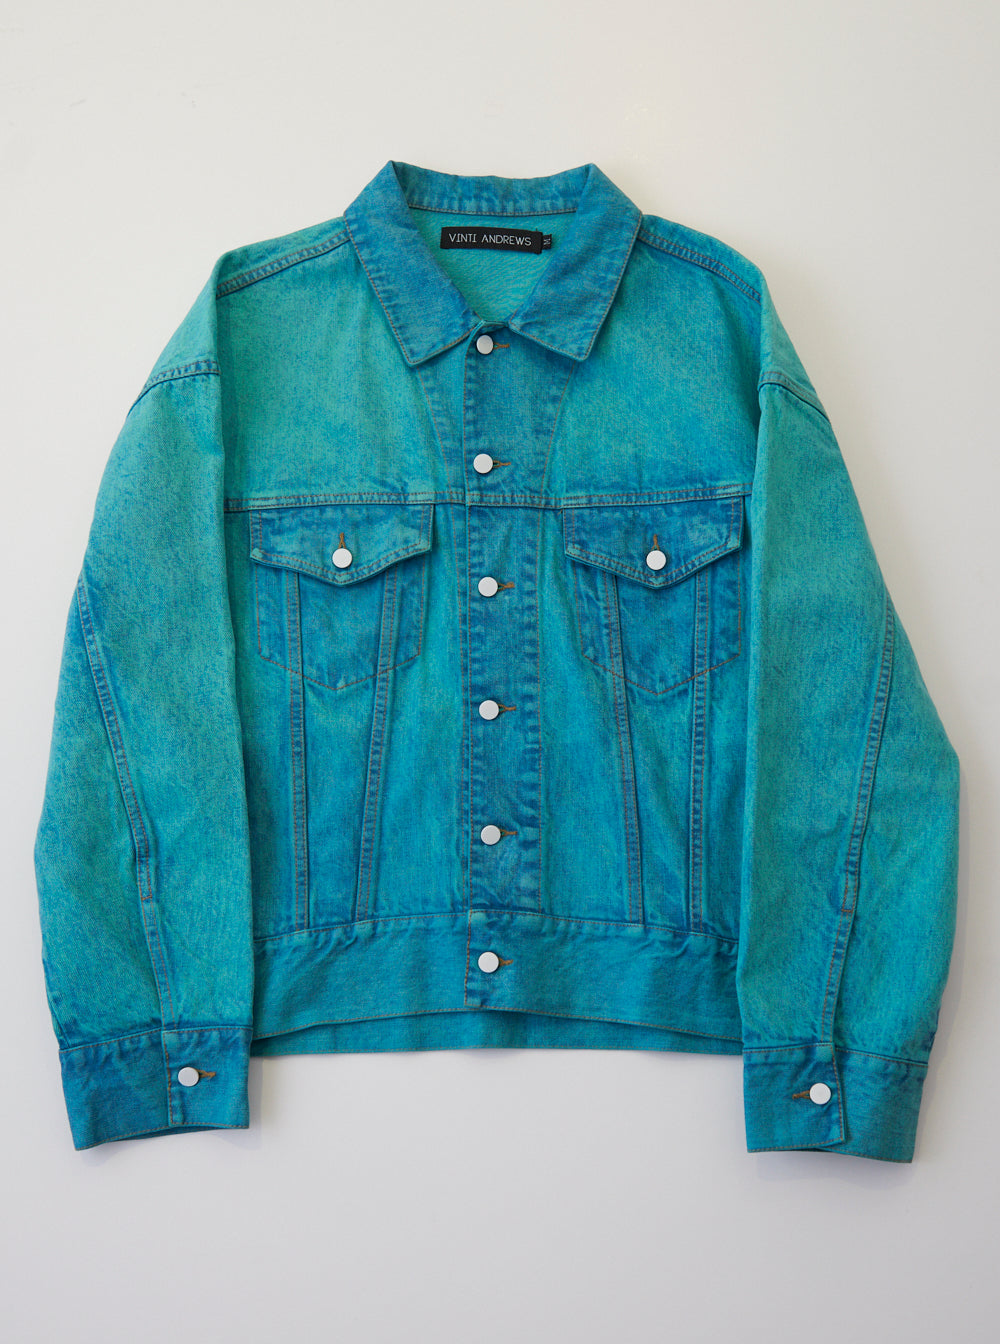 Vinti Andrews Denim Jacket Over Dyed Green